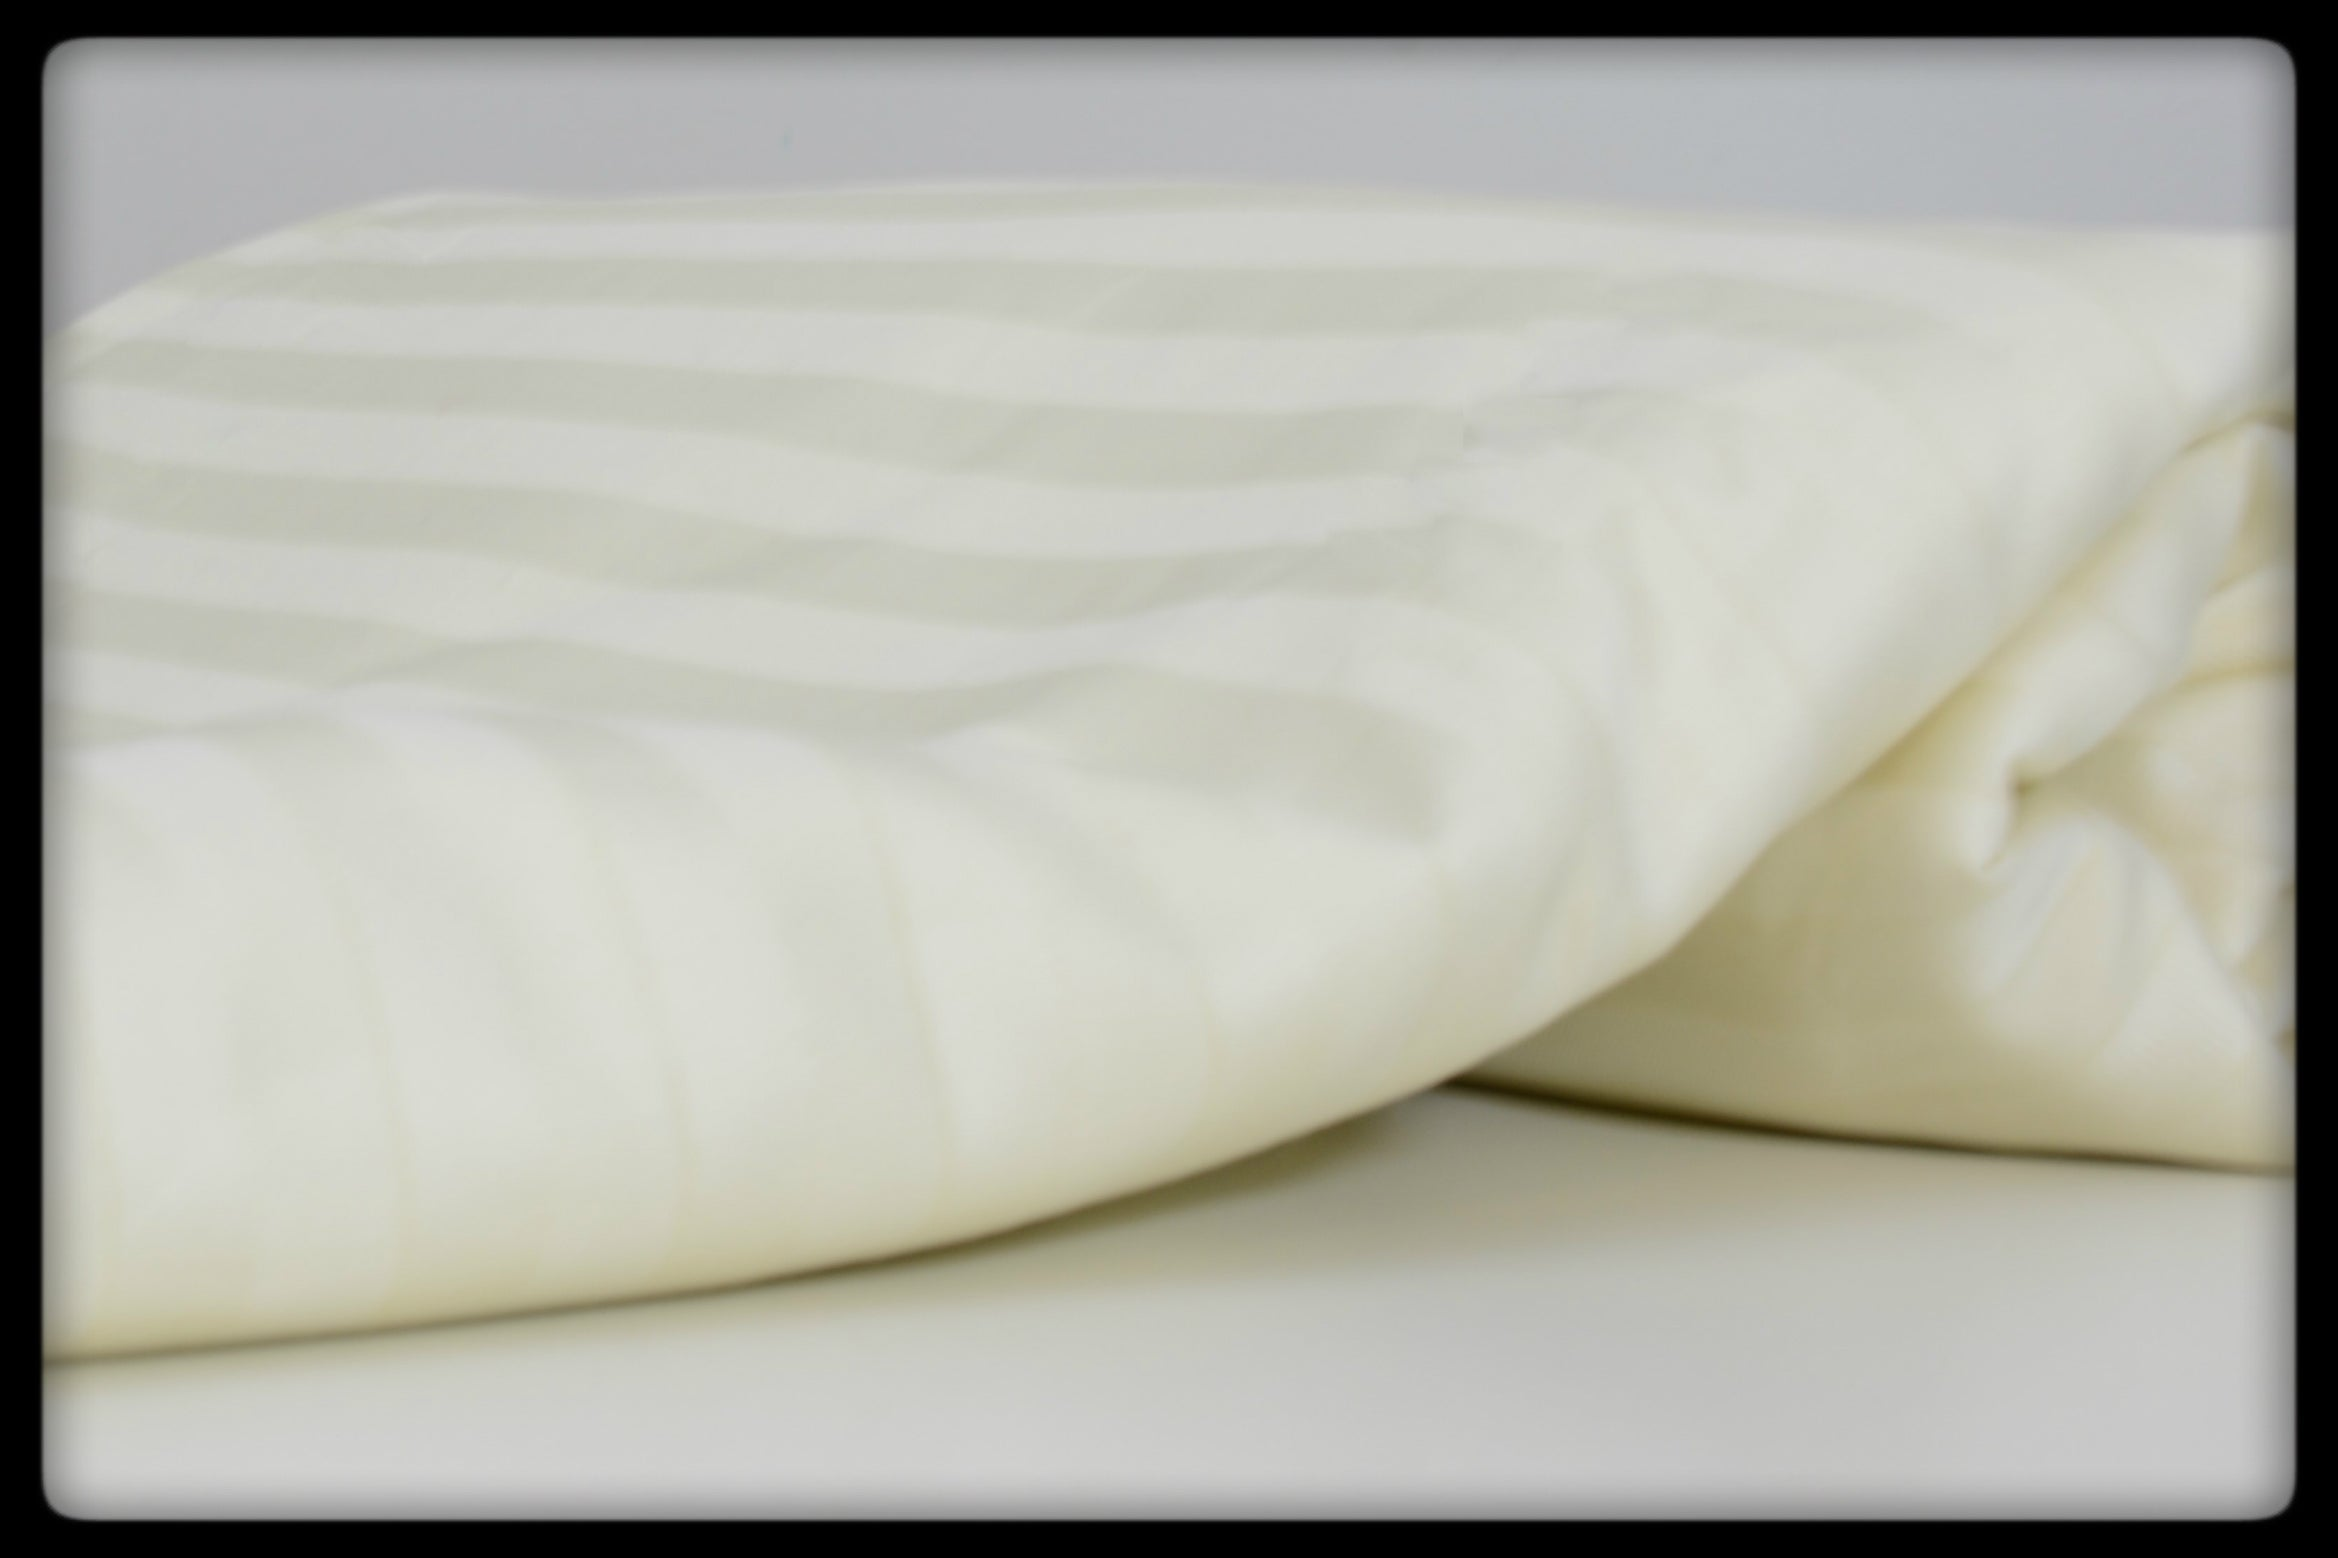 Cotton Flat Sheet (Style: Plain Cream with Stripes)